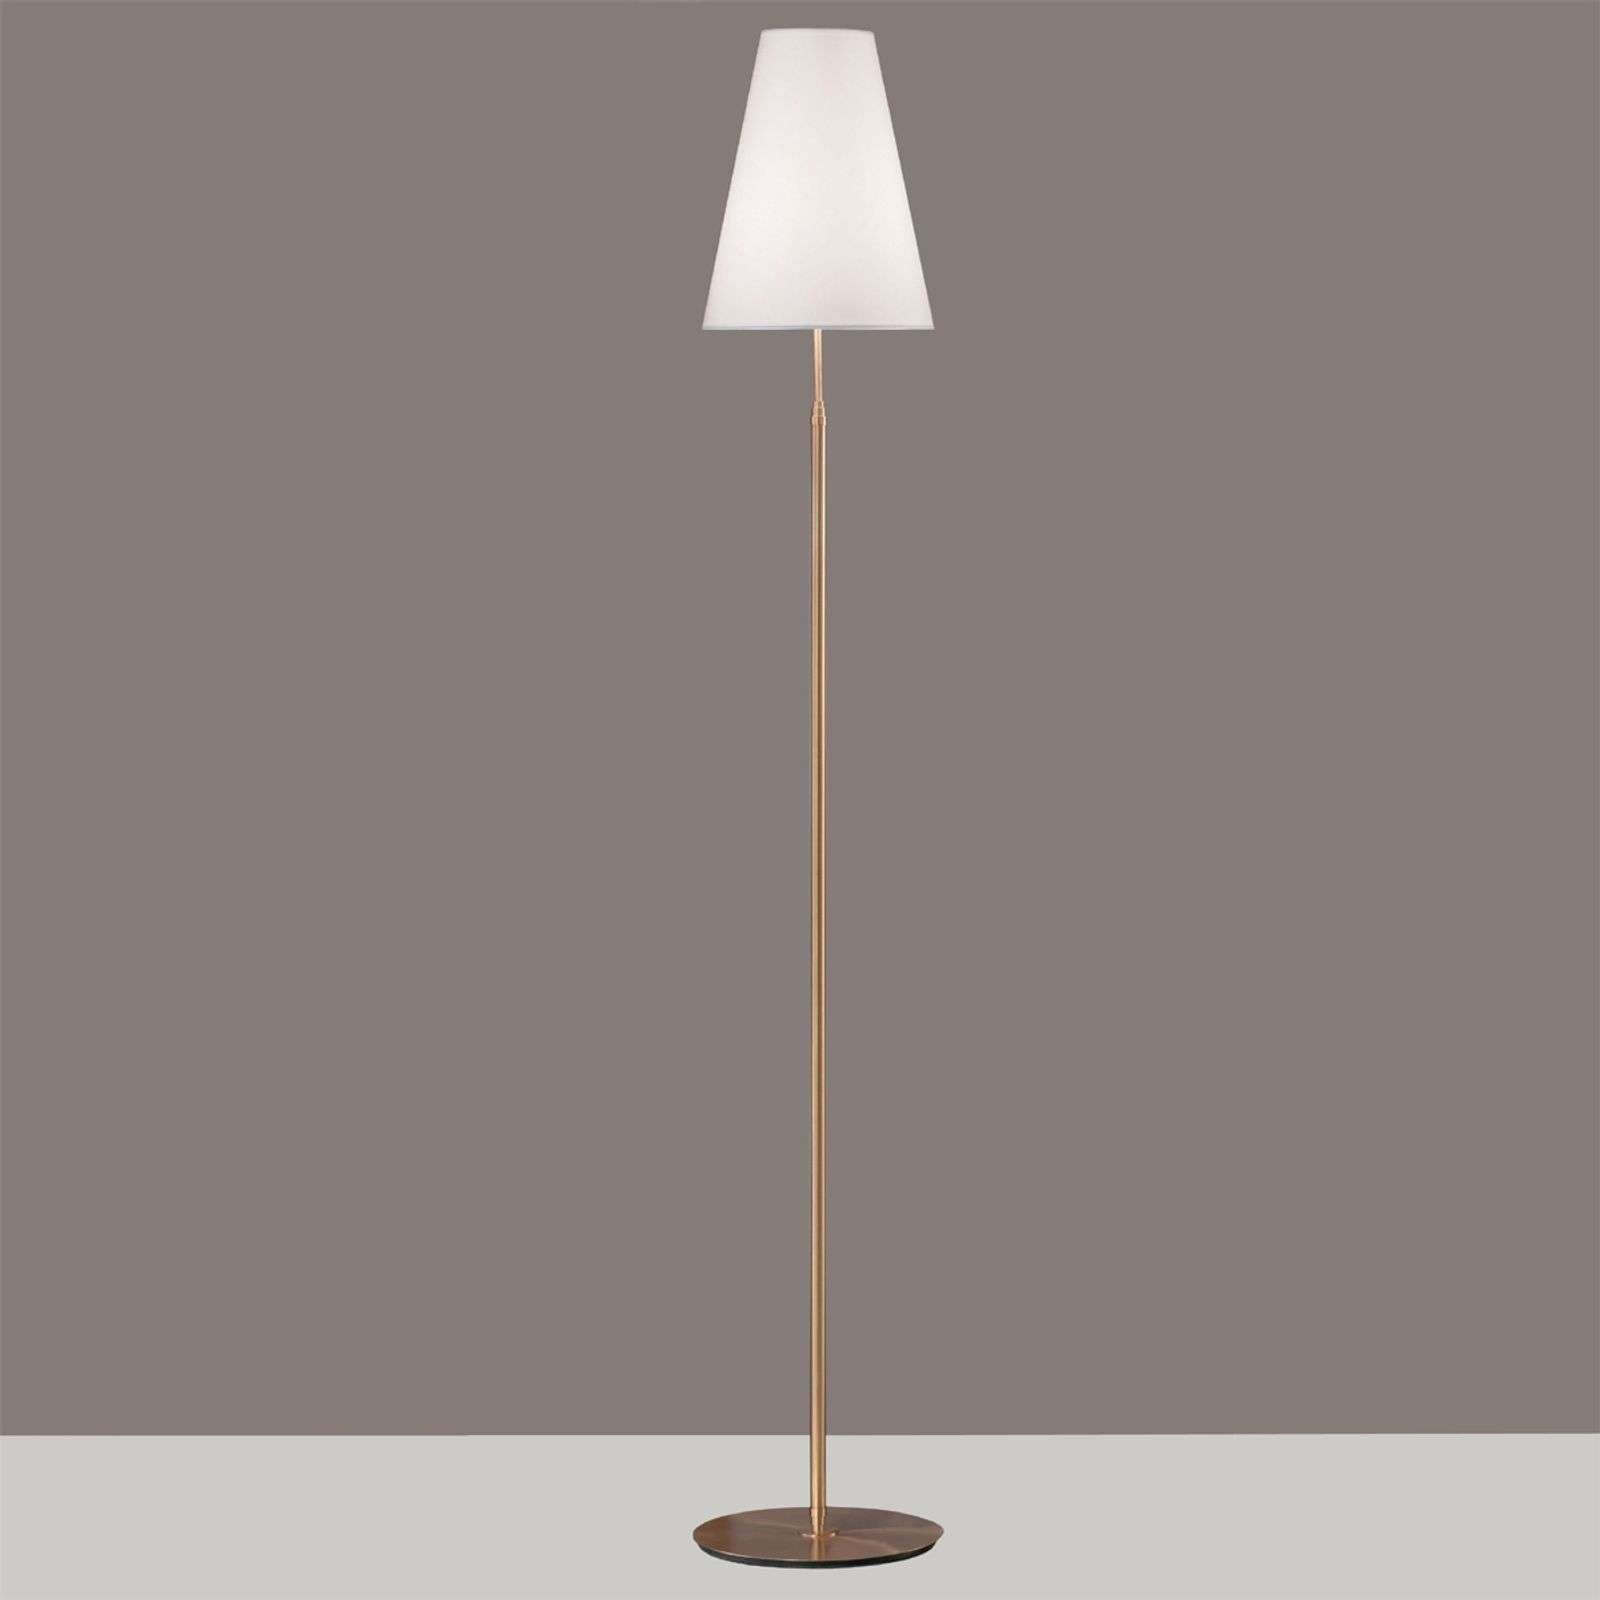 Clemo floor lamp with a gold coloured frame